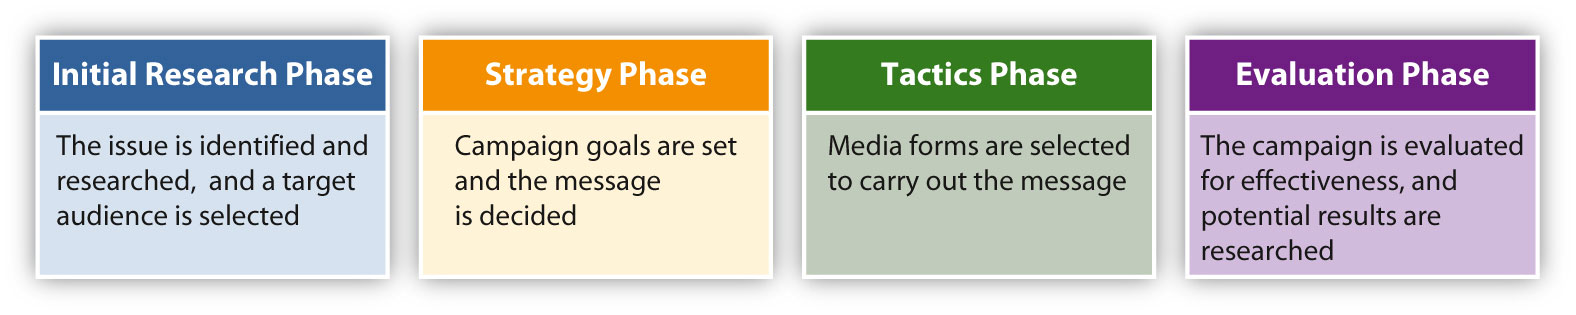 4 phases of a PR campaign: 1. Initial research 2. Strategy 3. Tactics 4. Evaluation. Explanation in text below.